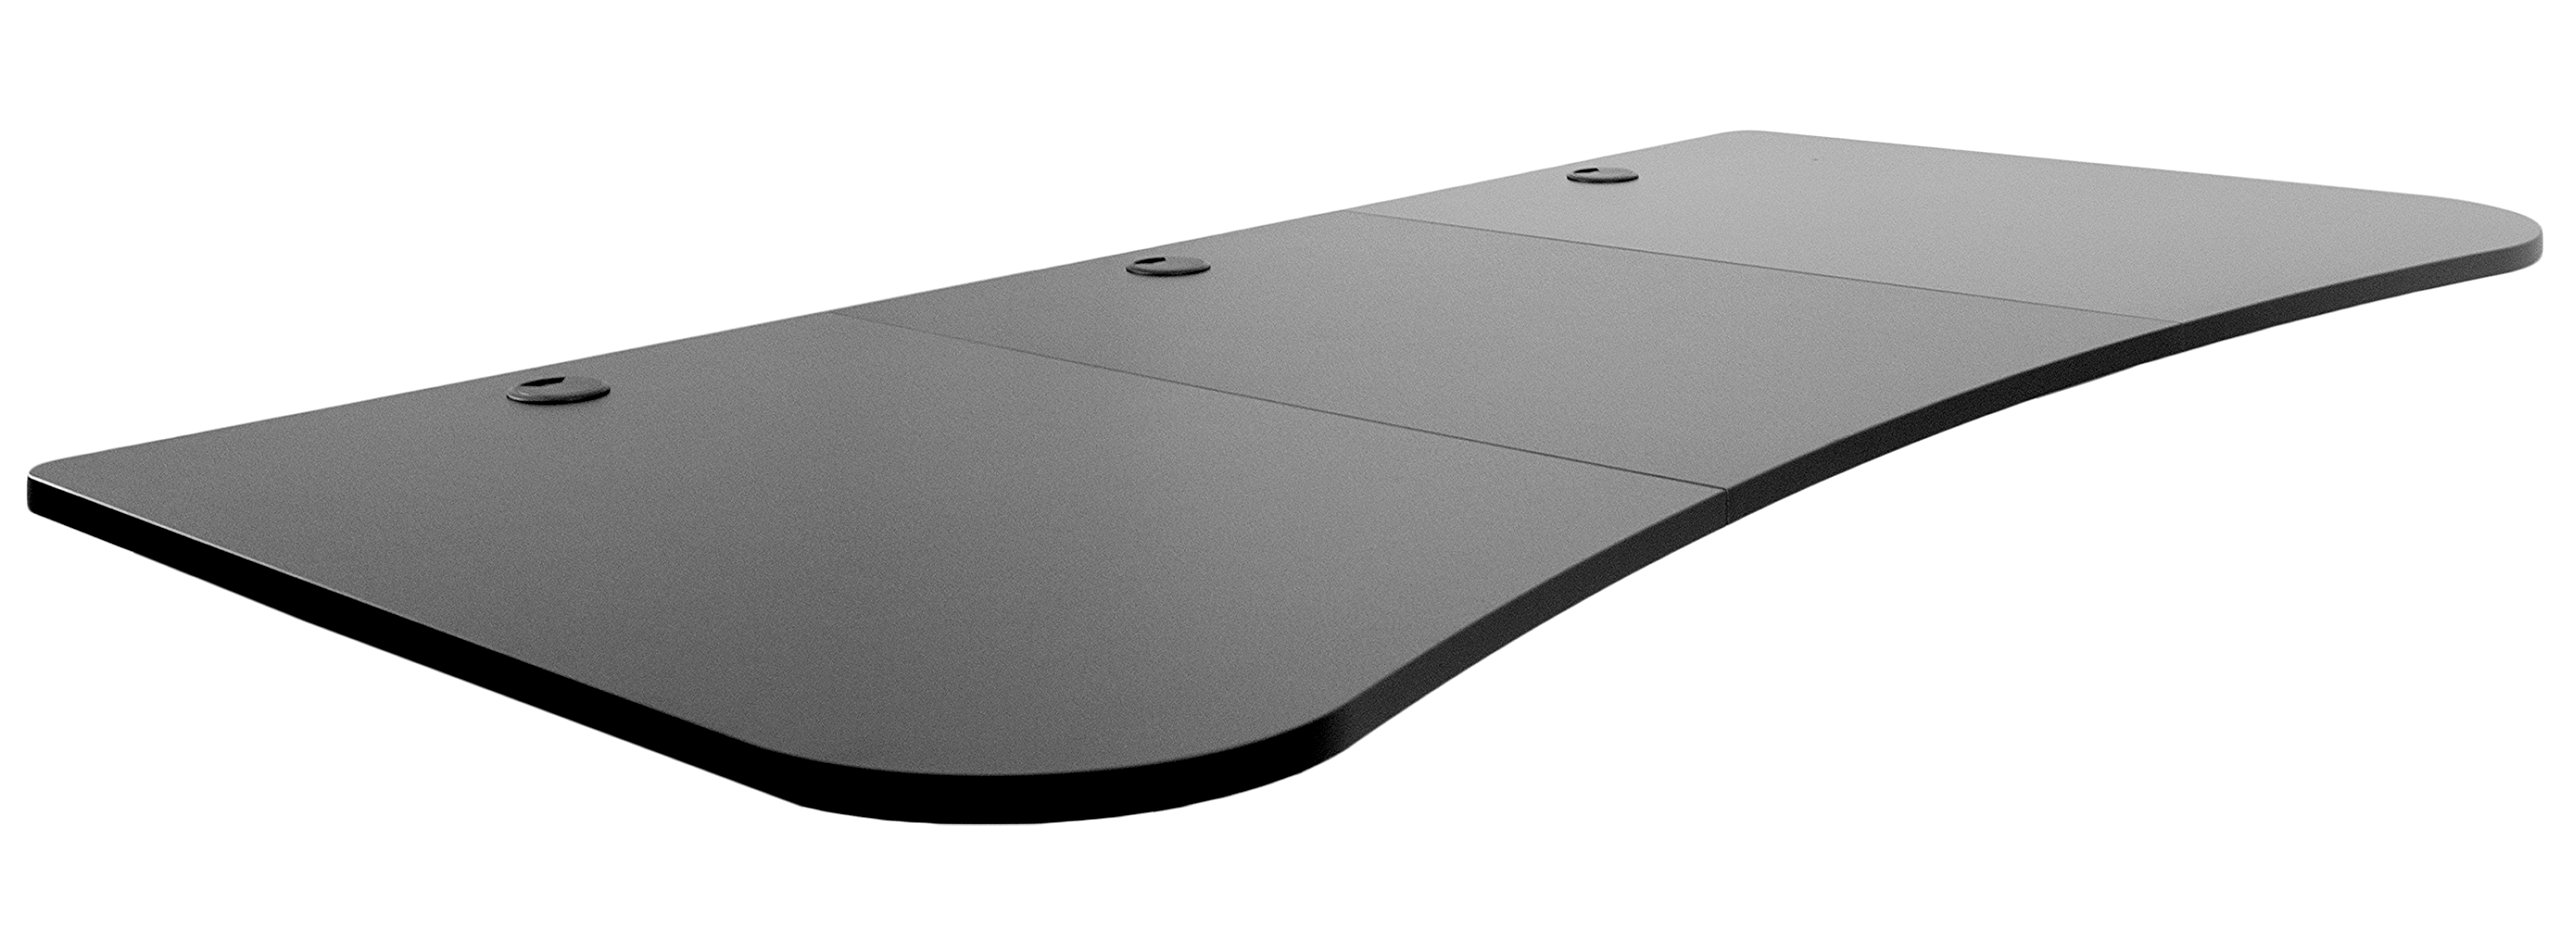 VIVO Black 63 x 32 inch Universal Table Top for Standard and Sit to Stand Height Adjustable Home and Office Desk Frames | 3 Section Desktop (DESK-TOP1B) by VIVO